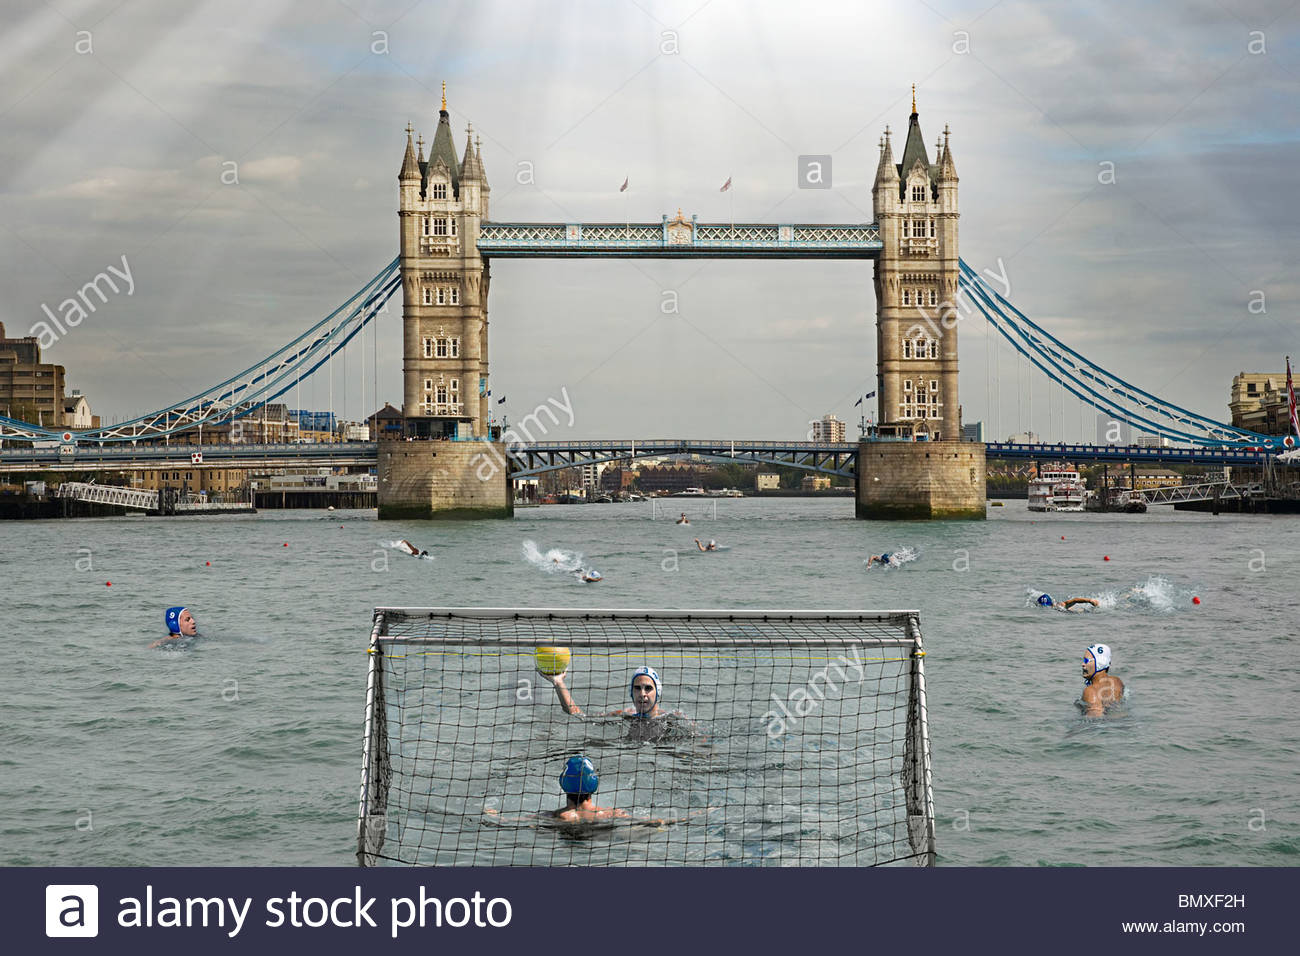 People playing water polo in river thames - Stock Image